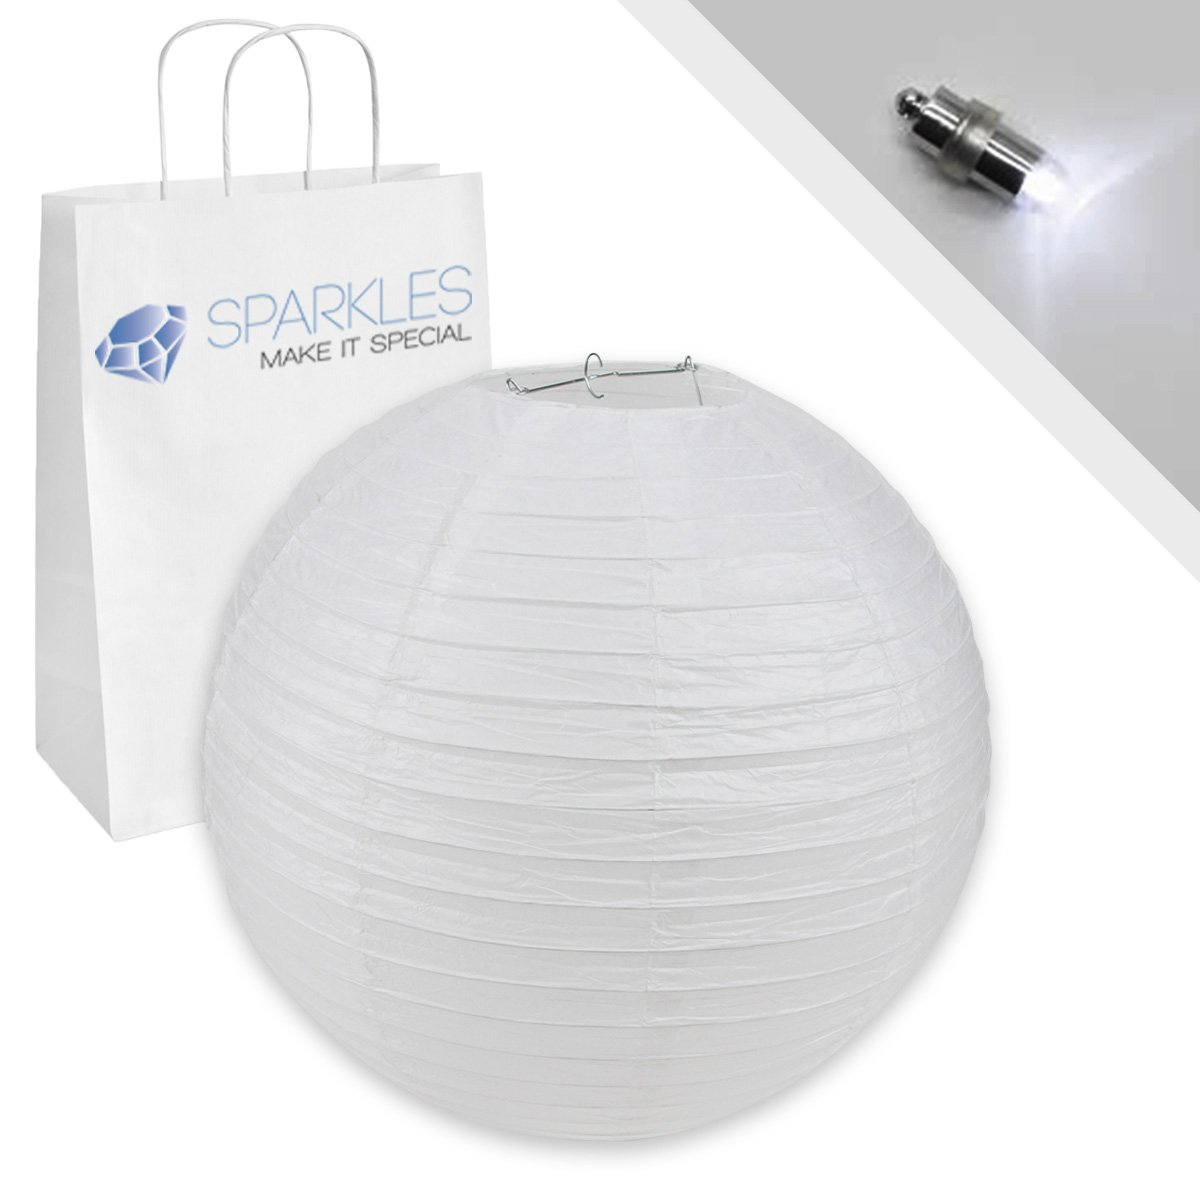 Sparkles Make It Special 25-pcs 20'' inch Chinese Paper Lantern - White - w/LED Lights - Wedding Party Event Decoration - 13 Colors and 8 Sizes Available